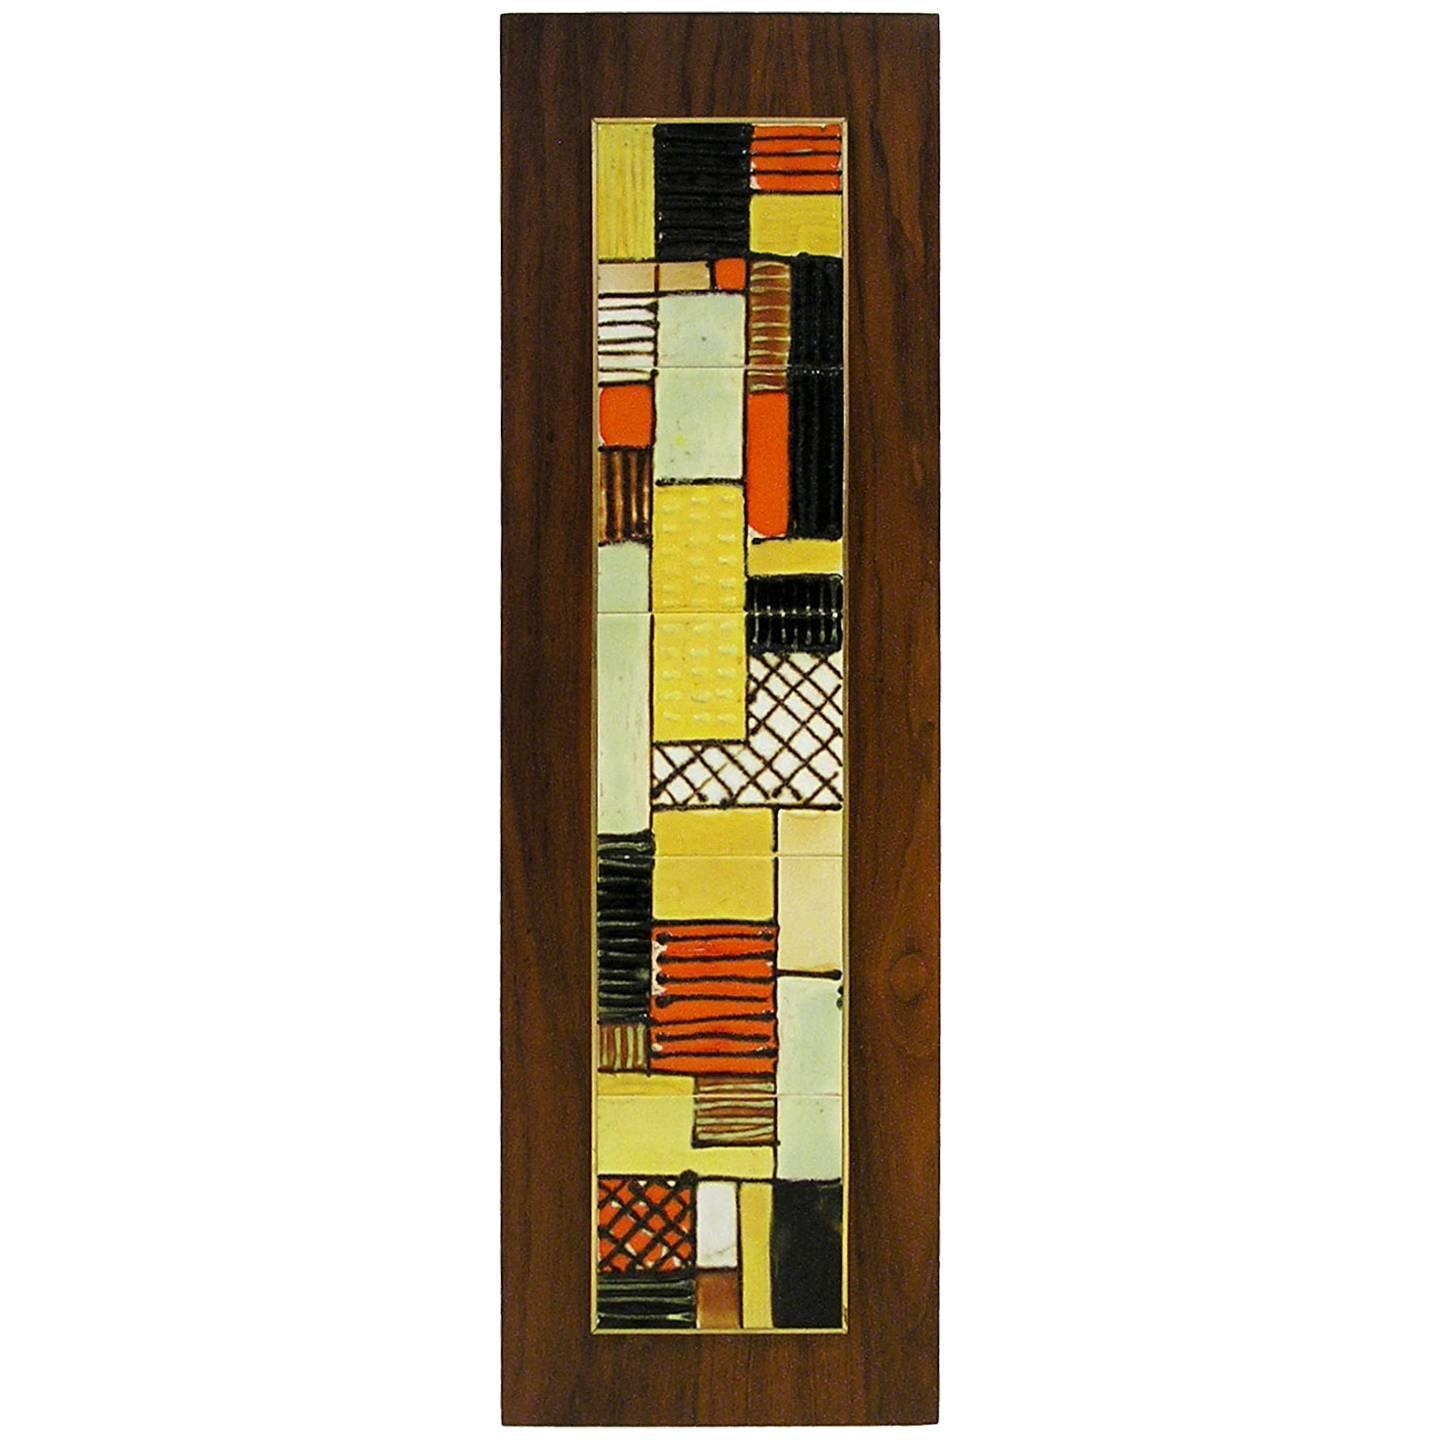 Mid Century Modern Ceramic Tile Art Wall Plaque by Harris Strong